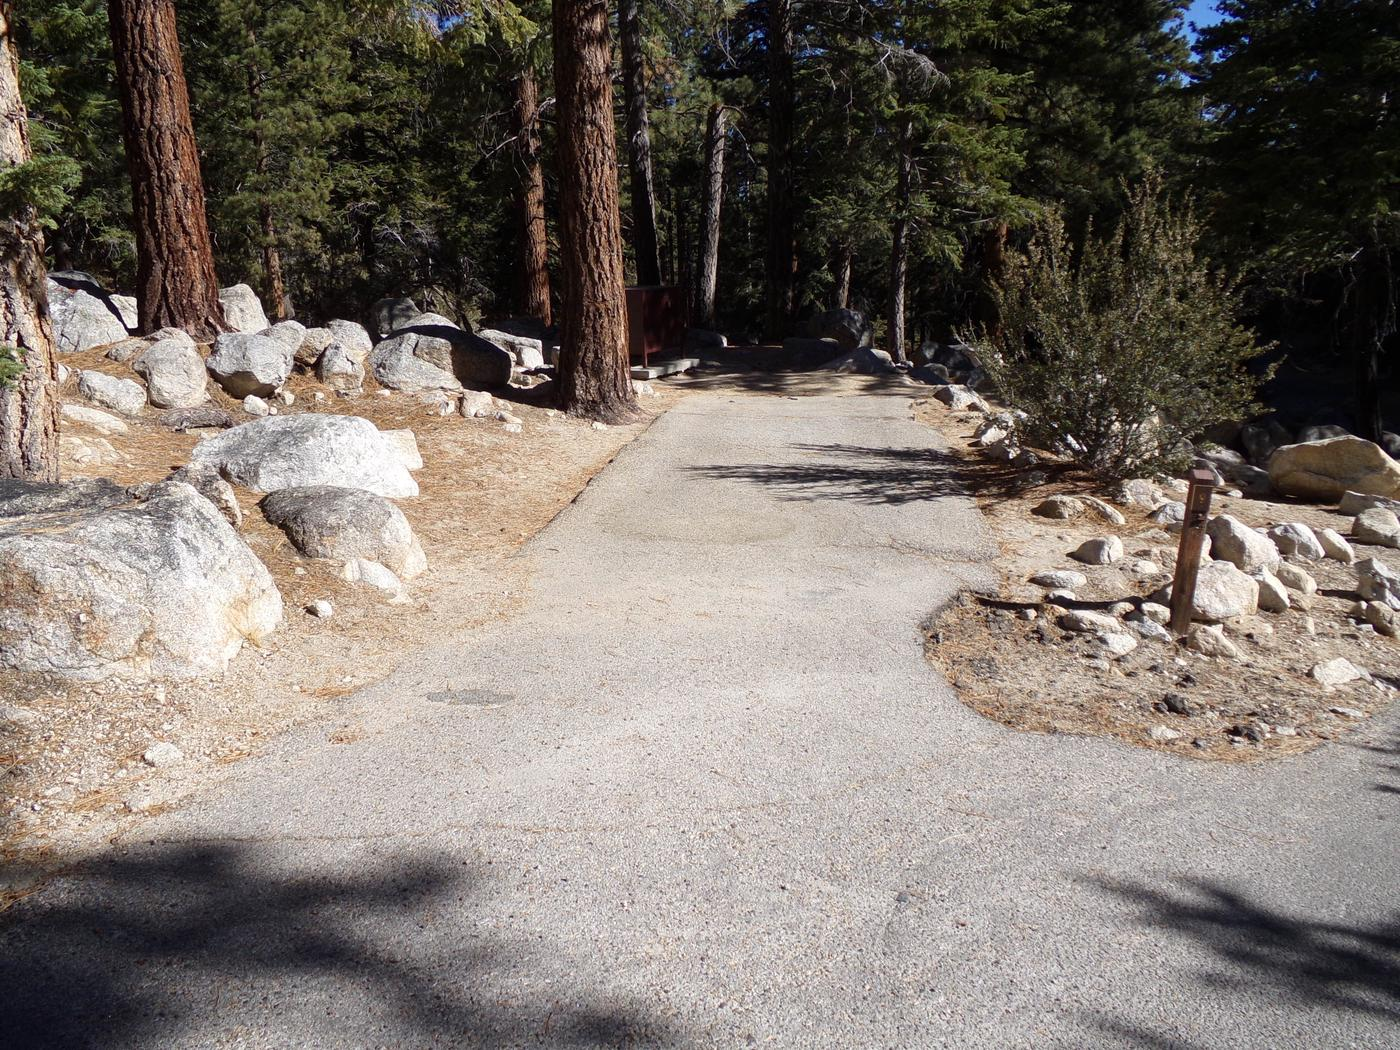 Parking space and entrance to site #09, Mt. Whitney Portal Campground.